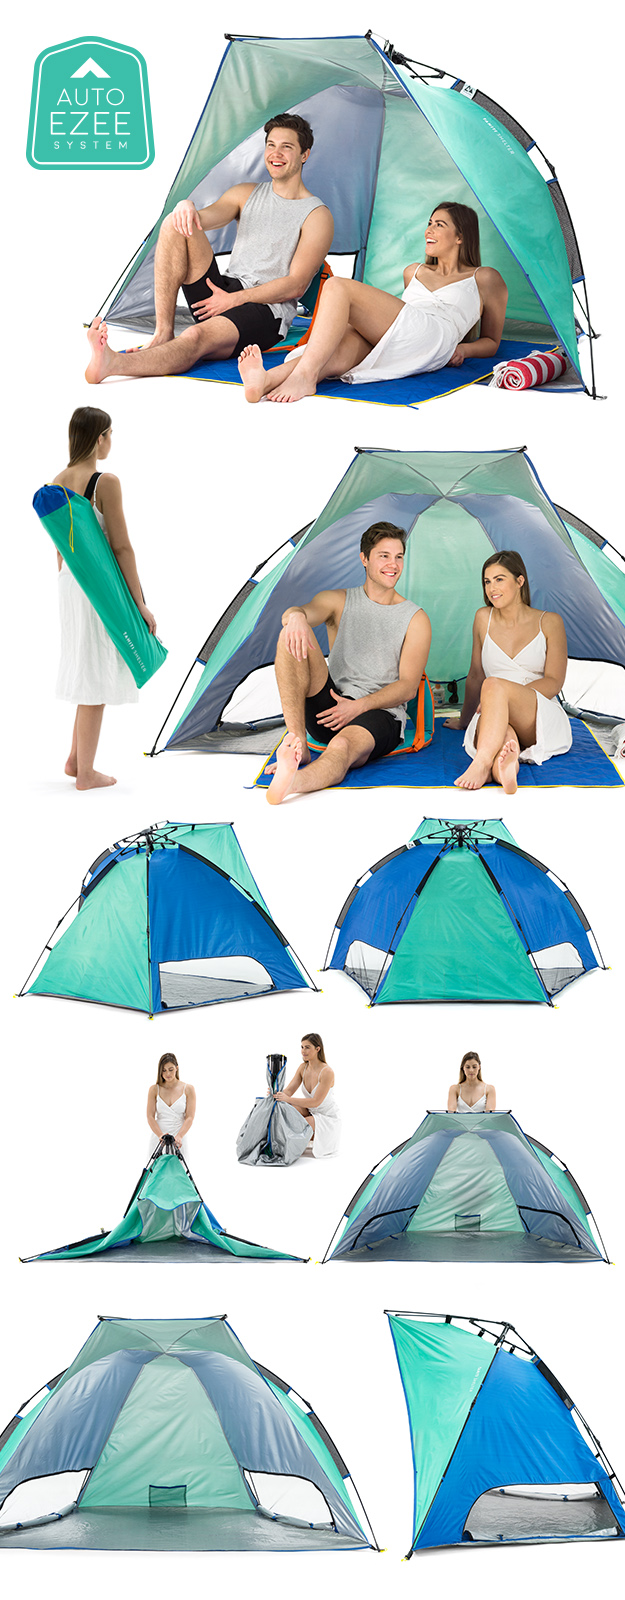 SlumberTrek Tahiti Auto Ezee Sun Shelter images showing use, setup and carry bag